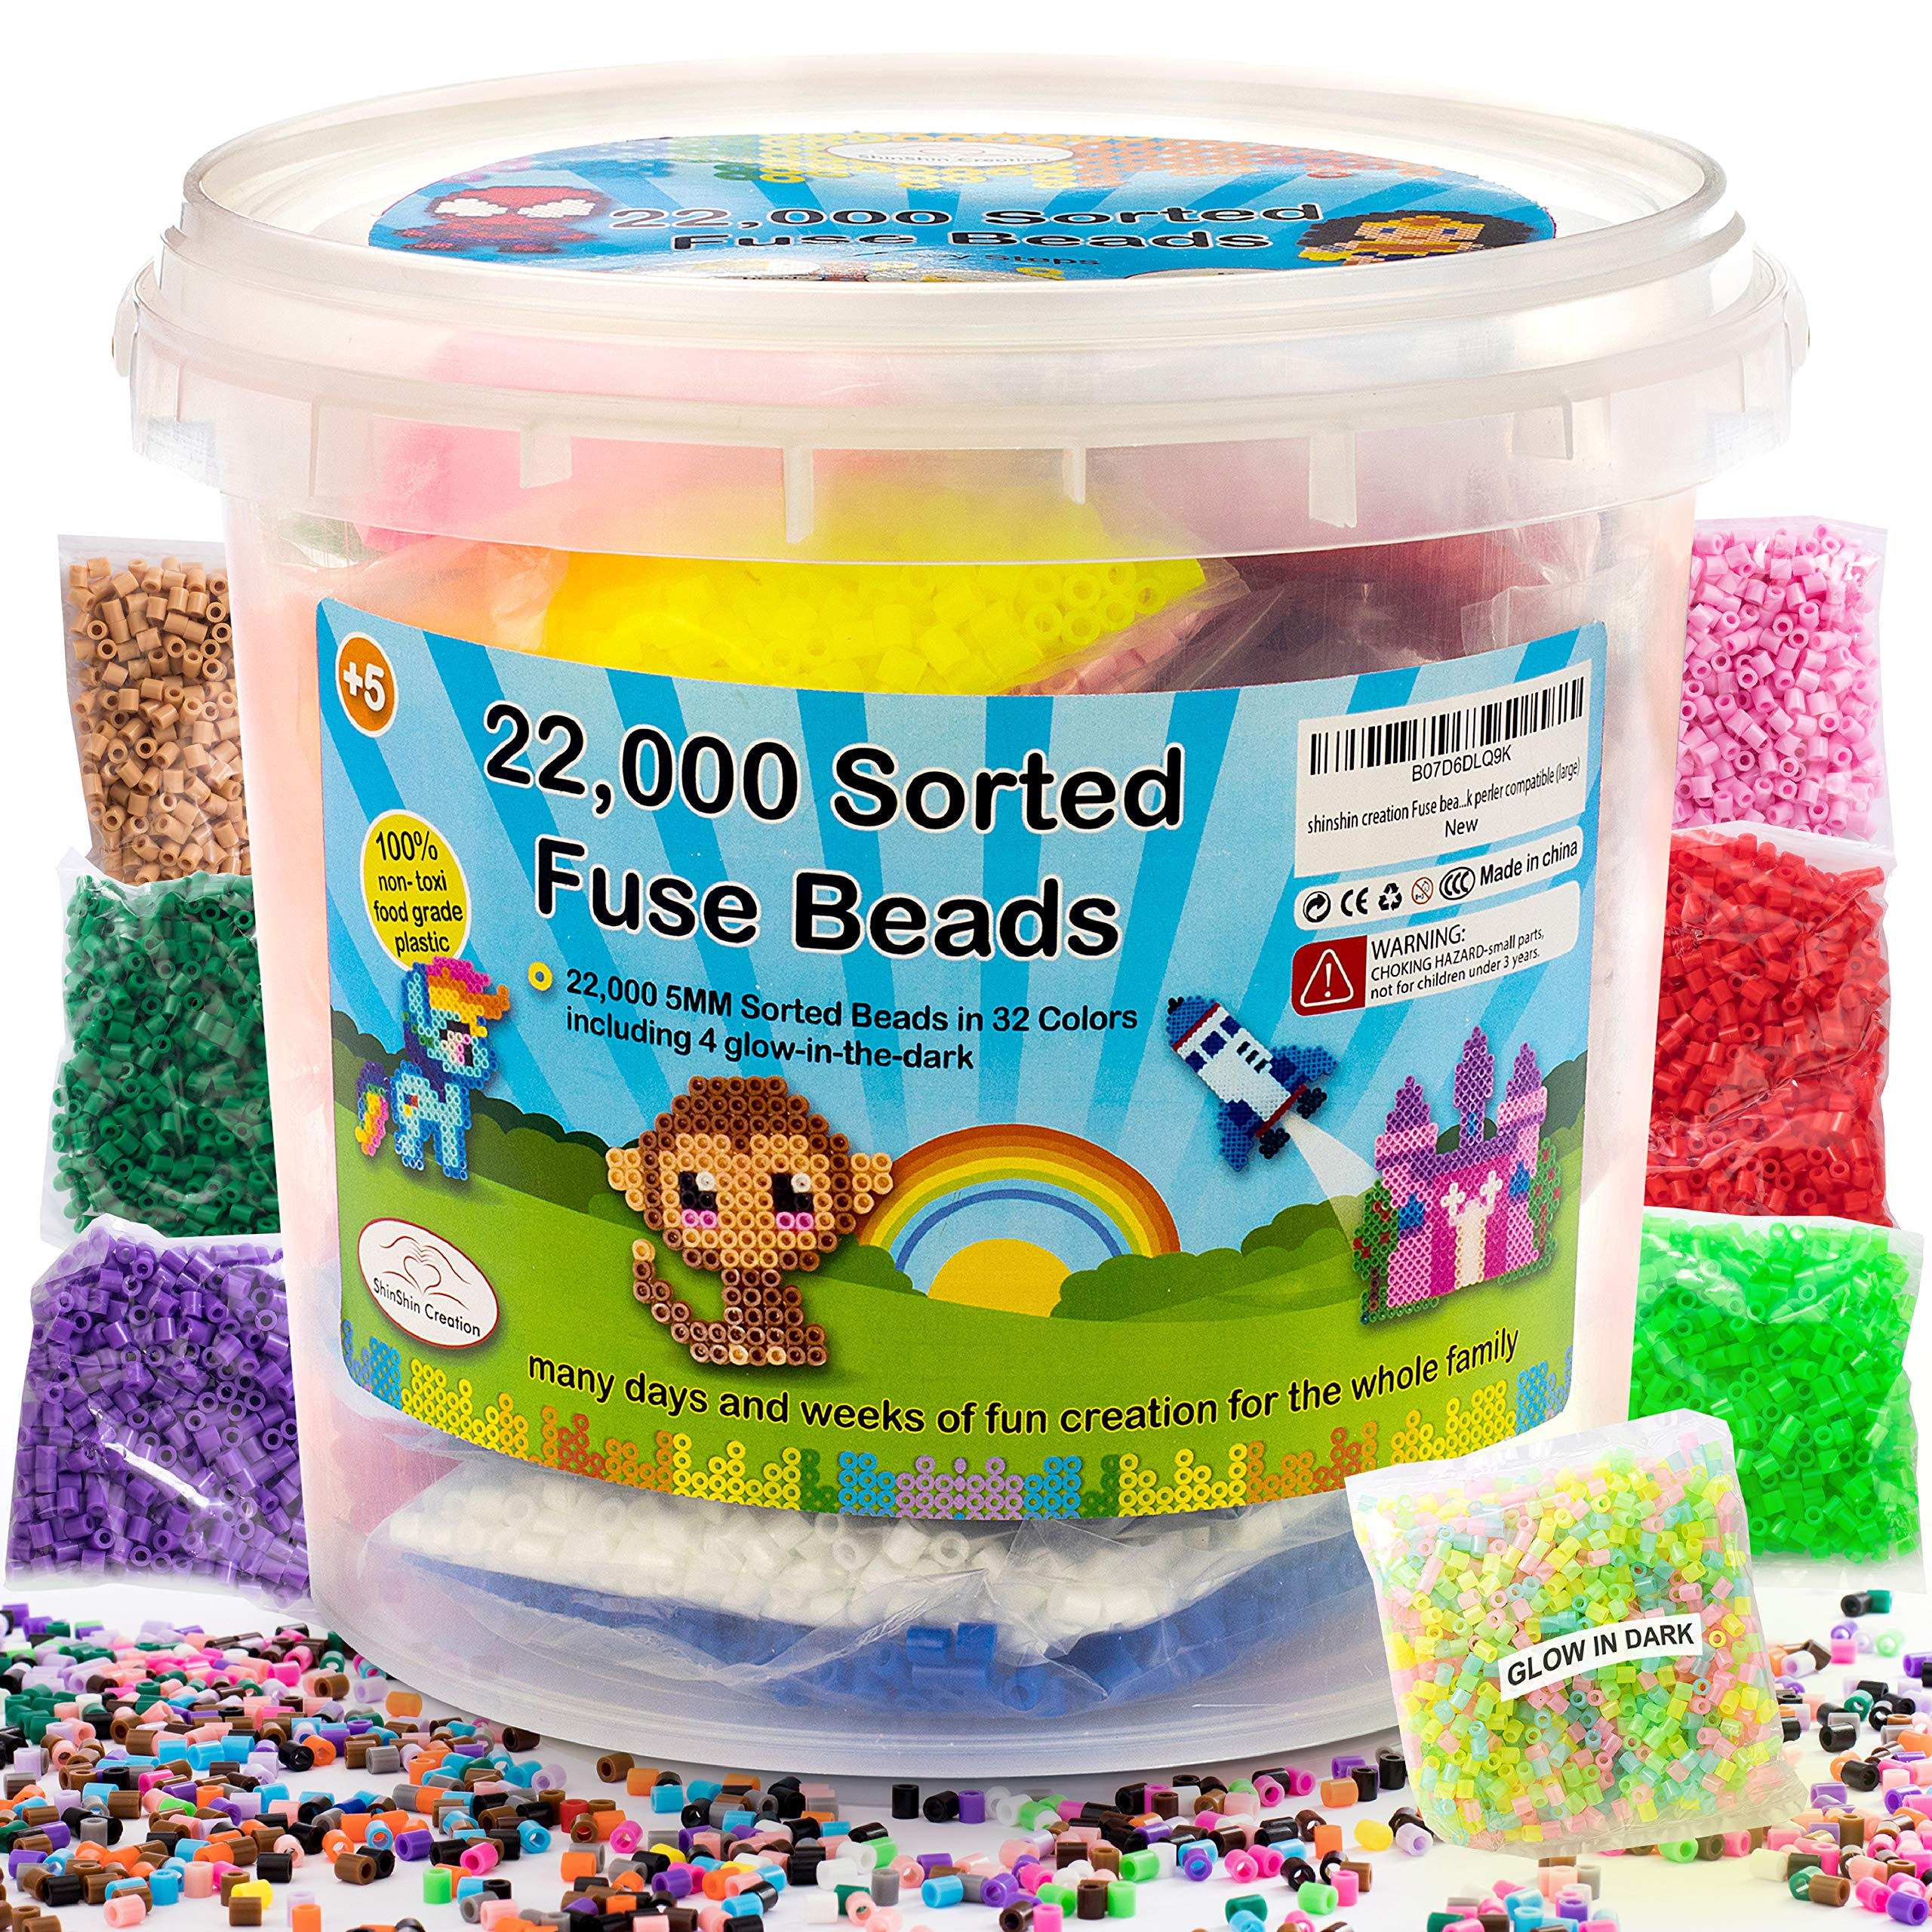 shinshin creation 22,000 Pre - Sorted Fuse Melty Beads Bucket Size 5mm 32 Colors Including Glow in The Dark Perler Compatible for Boy or Girl by shinshin creation